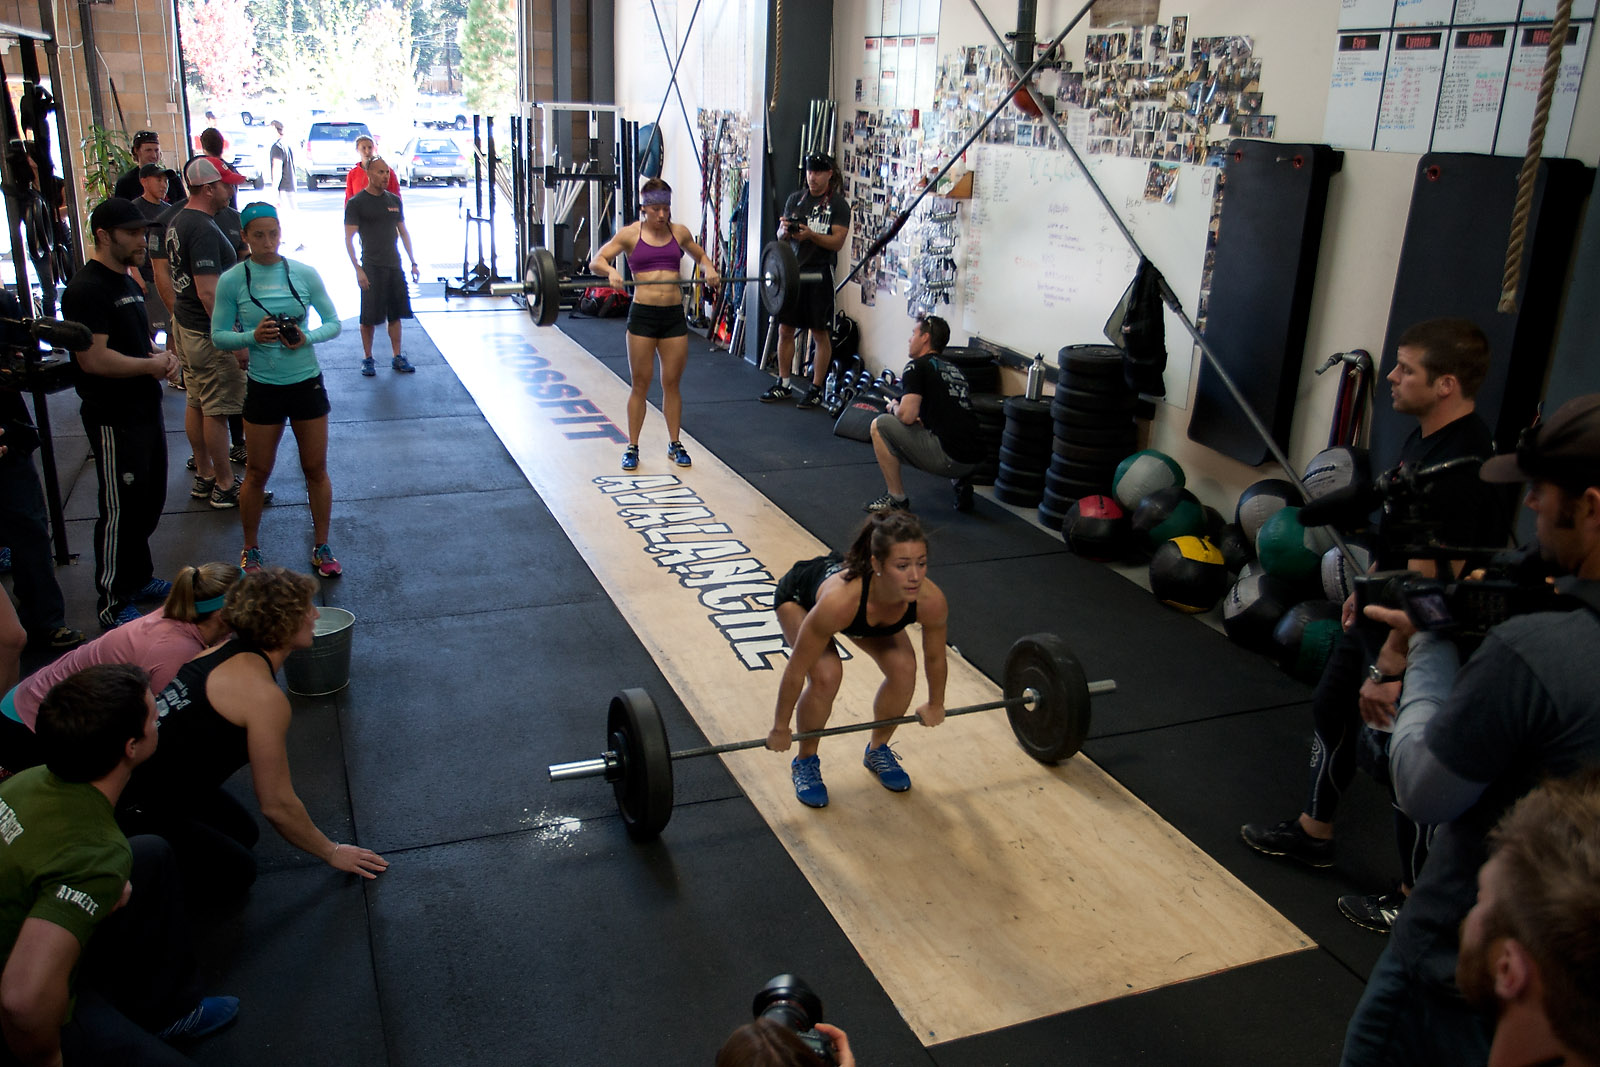 Hosting the tahoe throwdown crossfit games